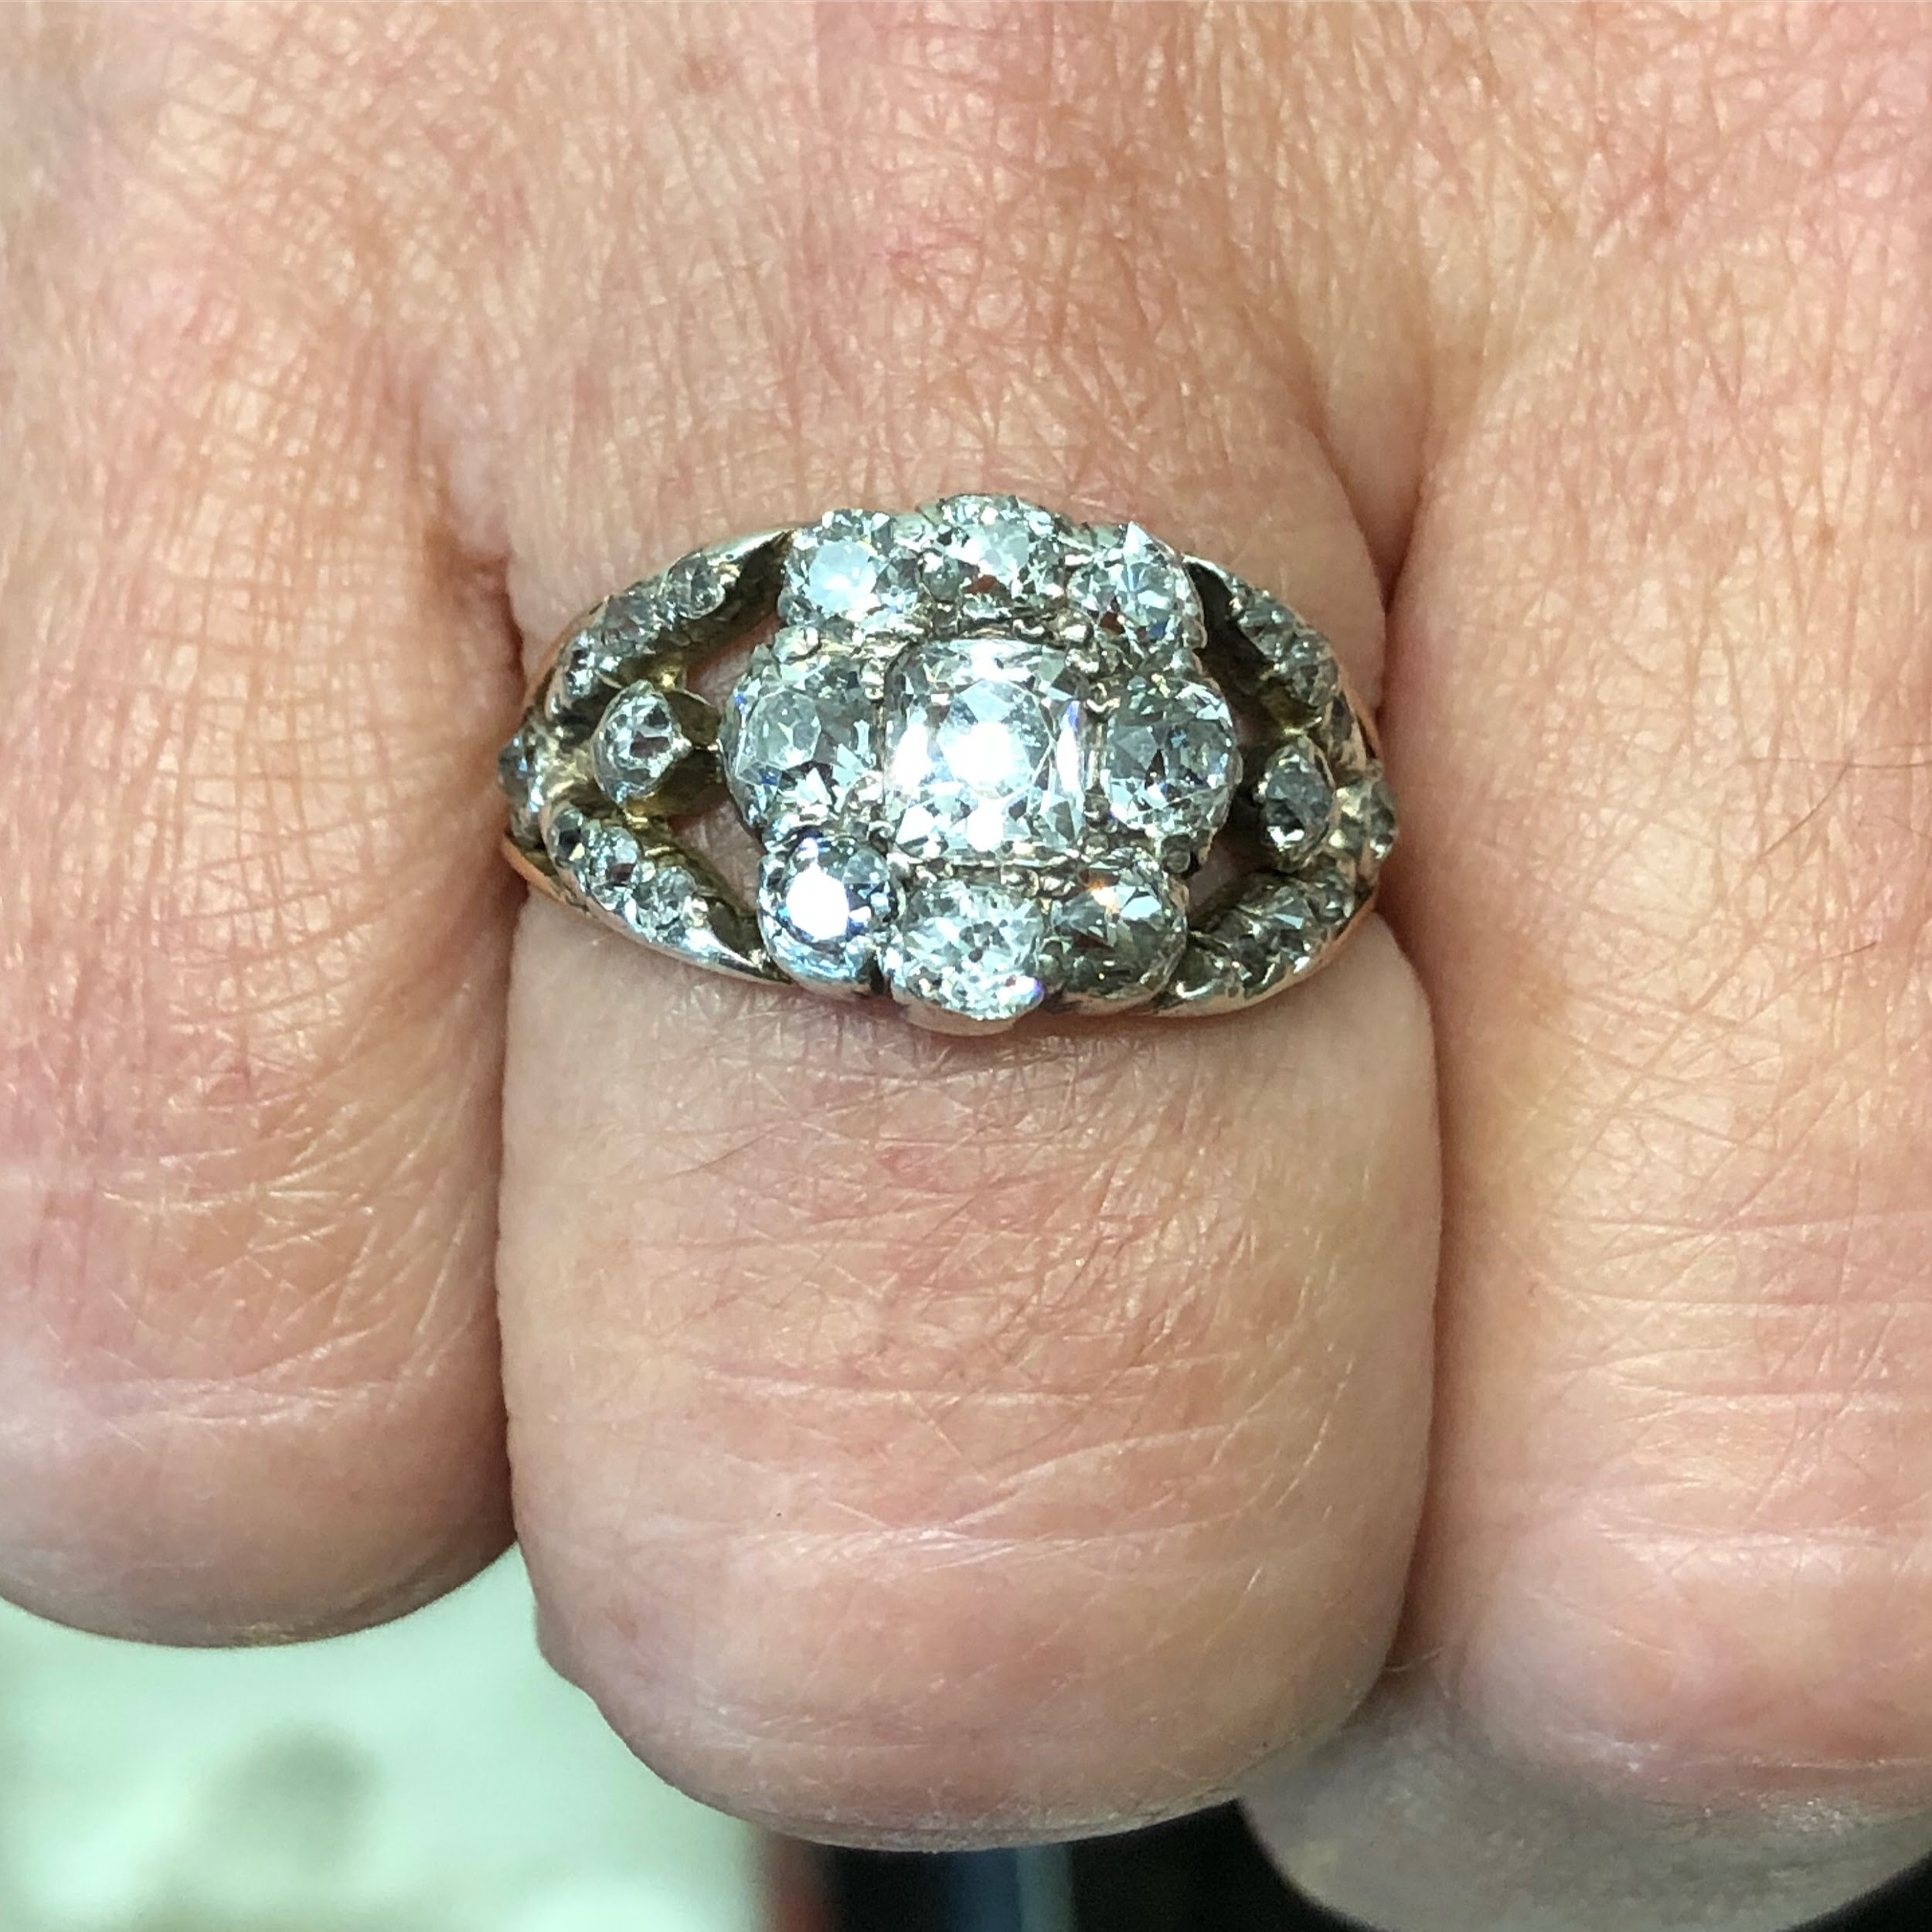 church falls diamonds bands wholesale charleston more engagement rings diamond antique ring jewelry store tacori and va